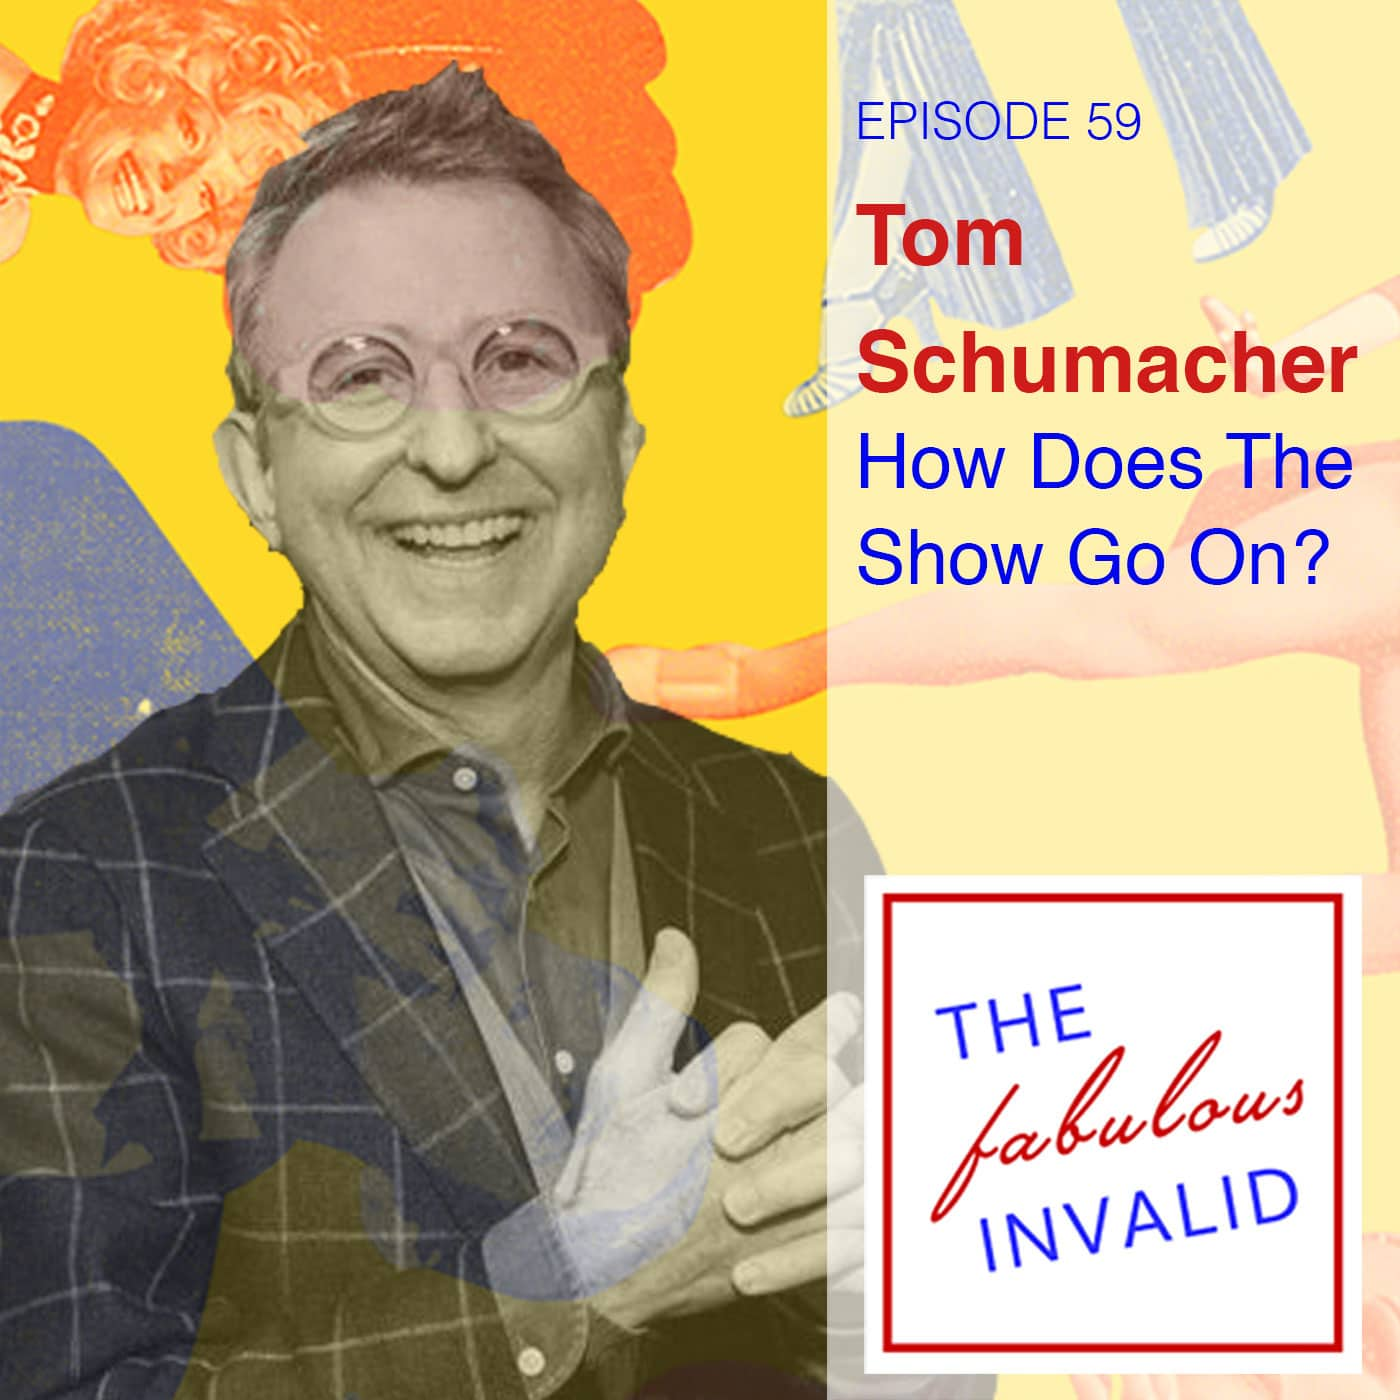 The Fabulous Invalid Episode 59 Tom Schumacher